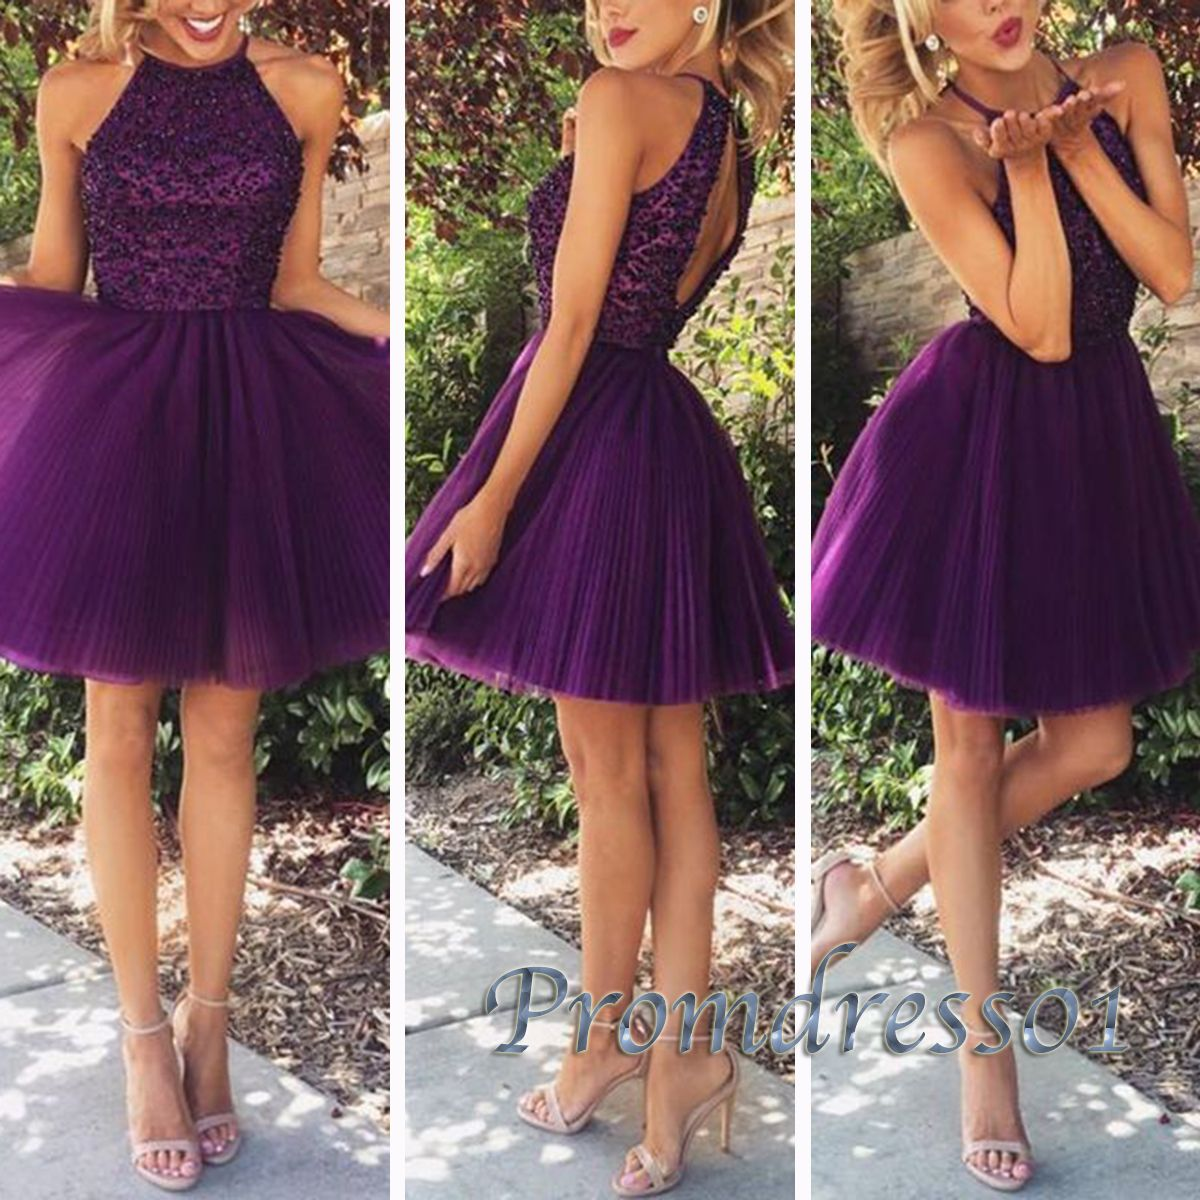 Prom dresses short, maxi dress 2016, Cute purple tulle beaded round neck short party dress for teens https://www.promdress01.com/#!product/prd1/4285349235/cute-purple-tulle-bead-round-neck-short-prom-dress